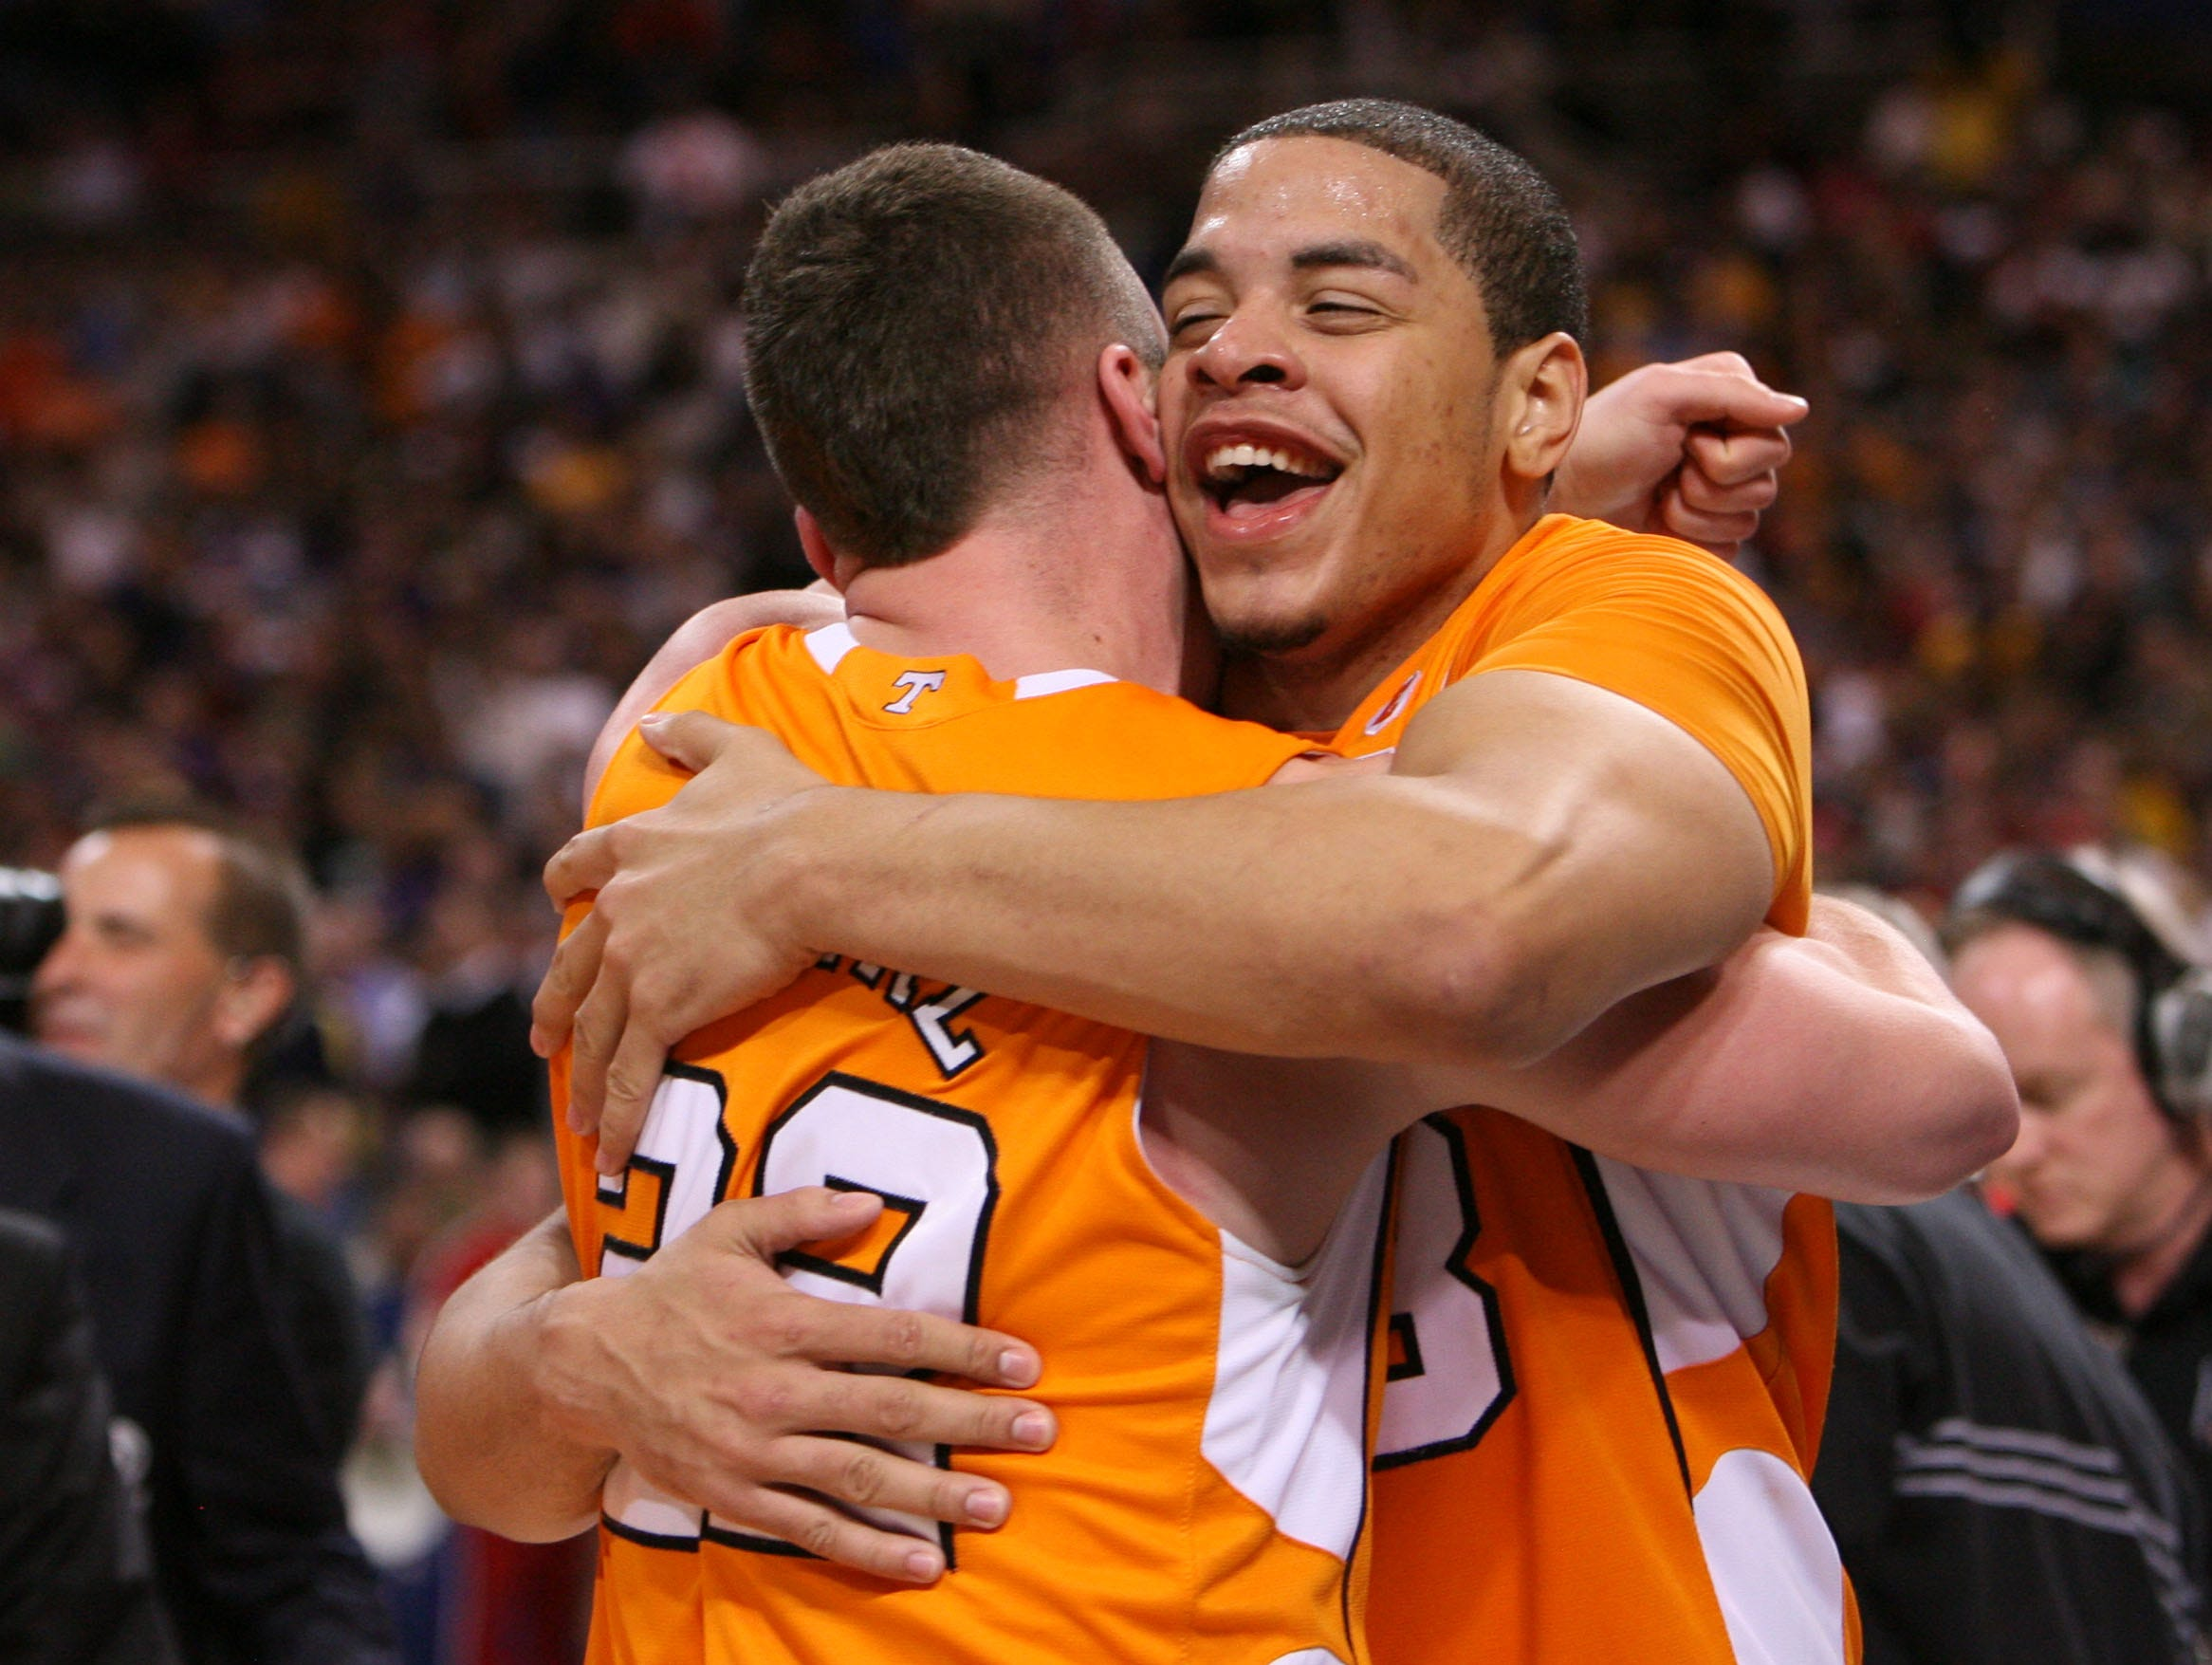 Tennessee's Steven Pearl, left, and Brian Williams, right, celebrate after defeating Ohio State 76-73 during the NCAA tournament Sweet Sixteen at the Edward Jones Dome in St. Louis, Mo., Friday, Mar. 26, 2010.